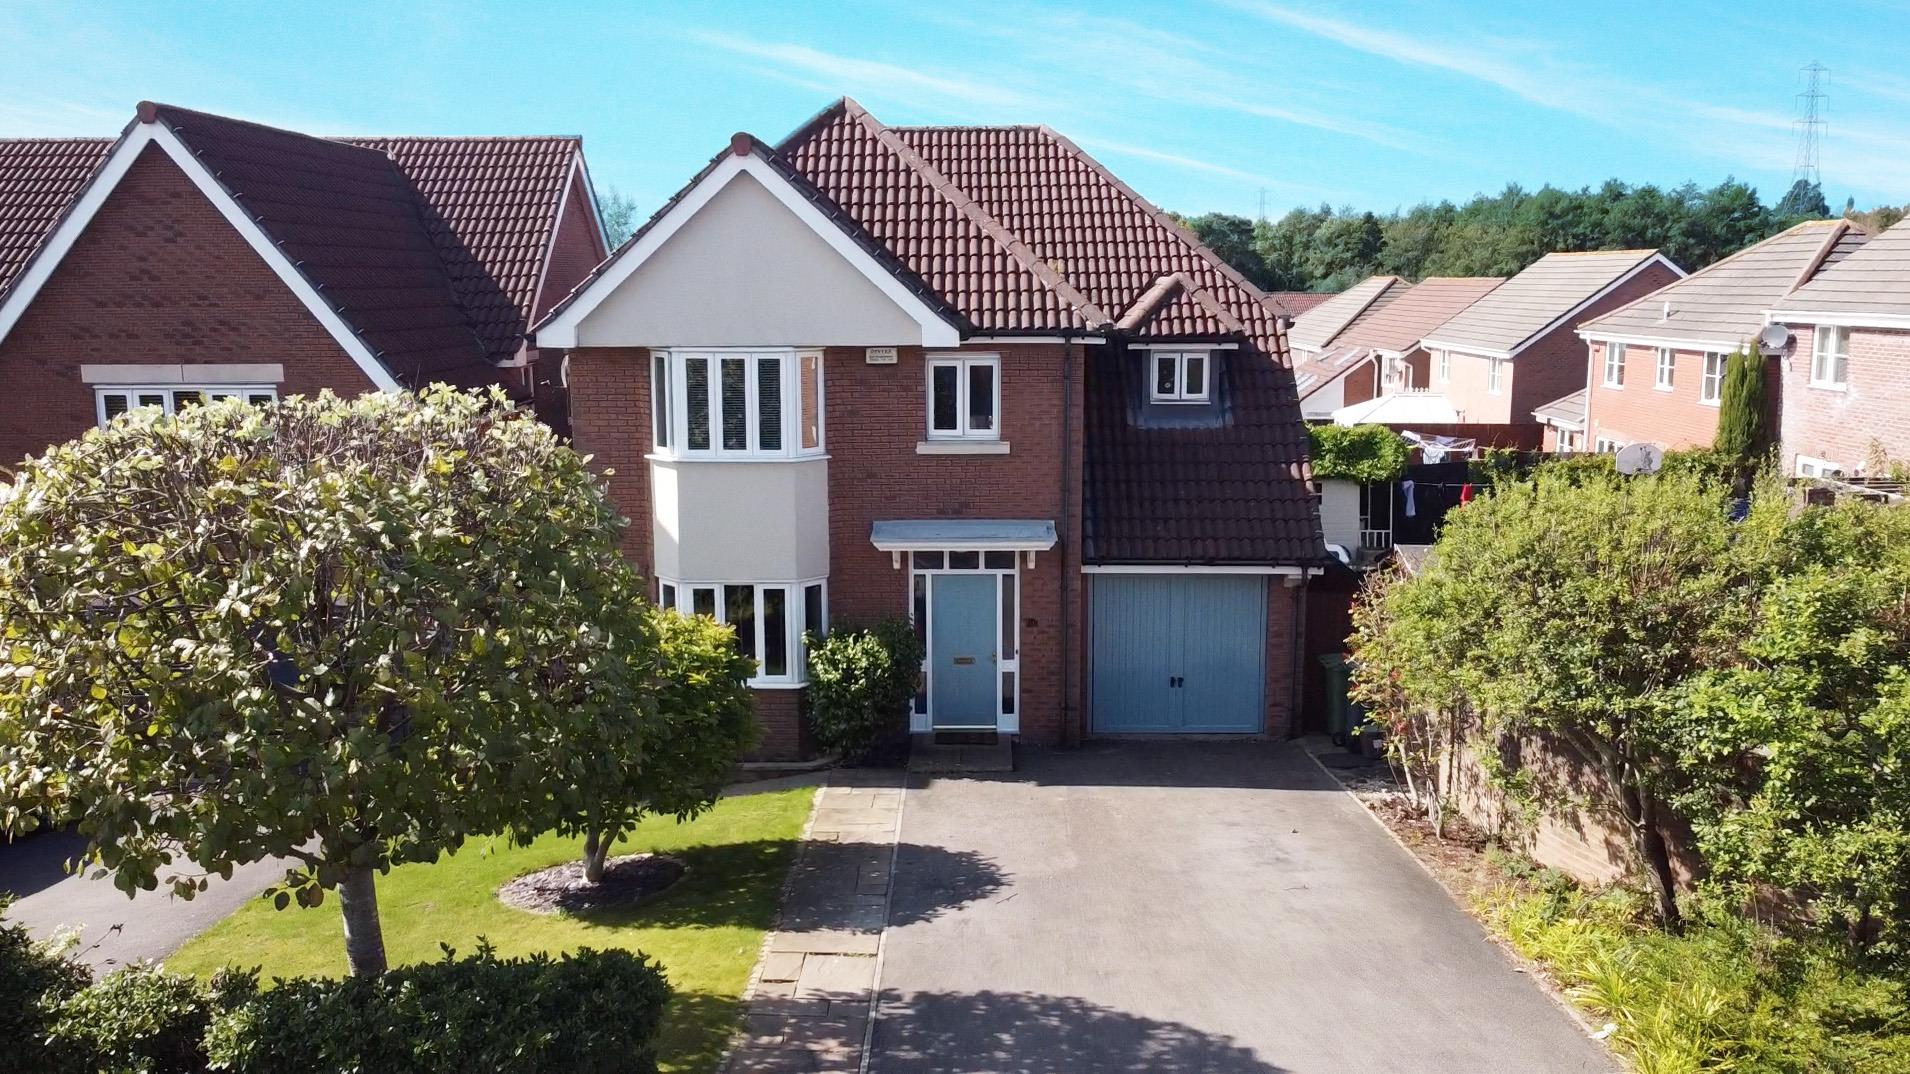 4 bed detached house for sale in Old Mill Drive, Cardiff, CF5